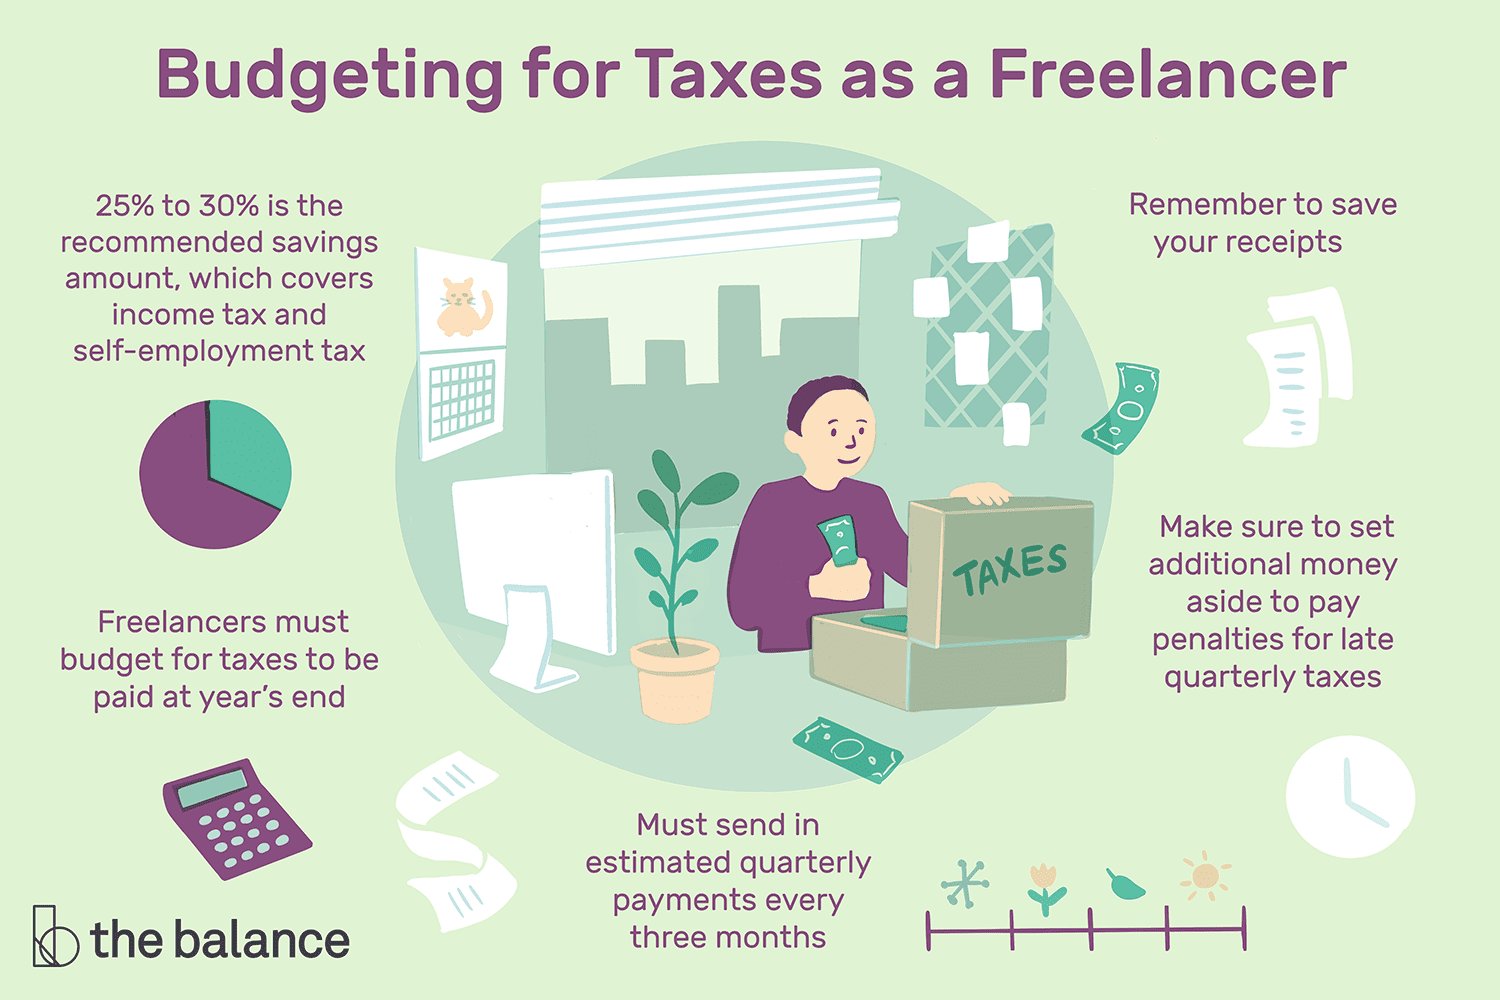 How Much Should You Budget For Taxes As A Freelancer